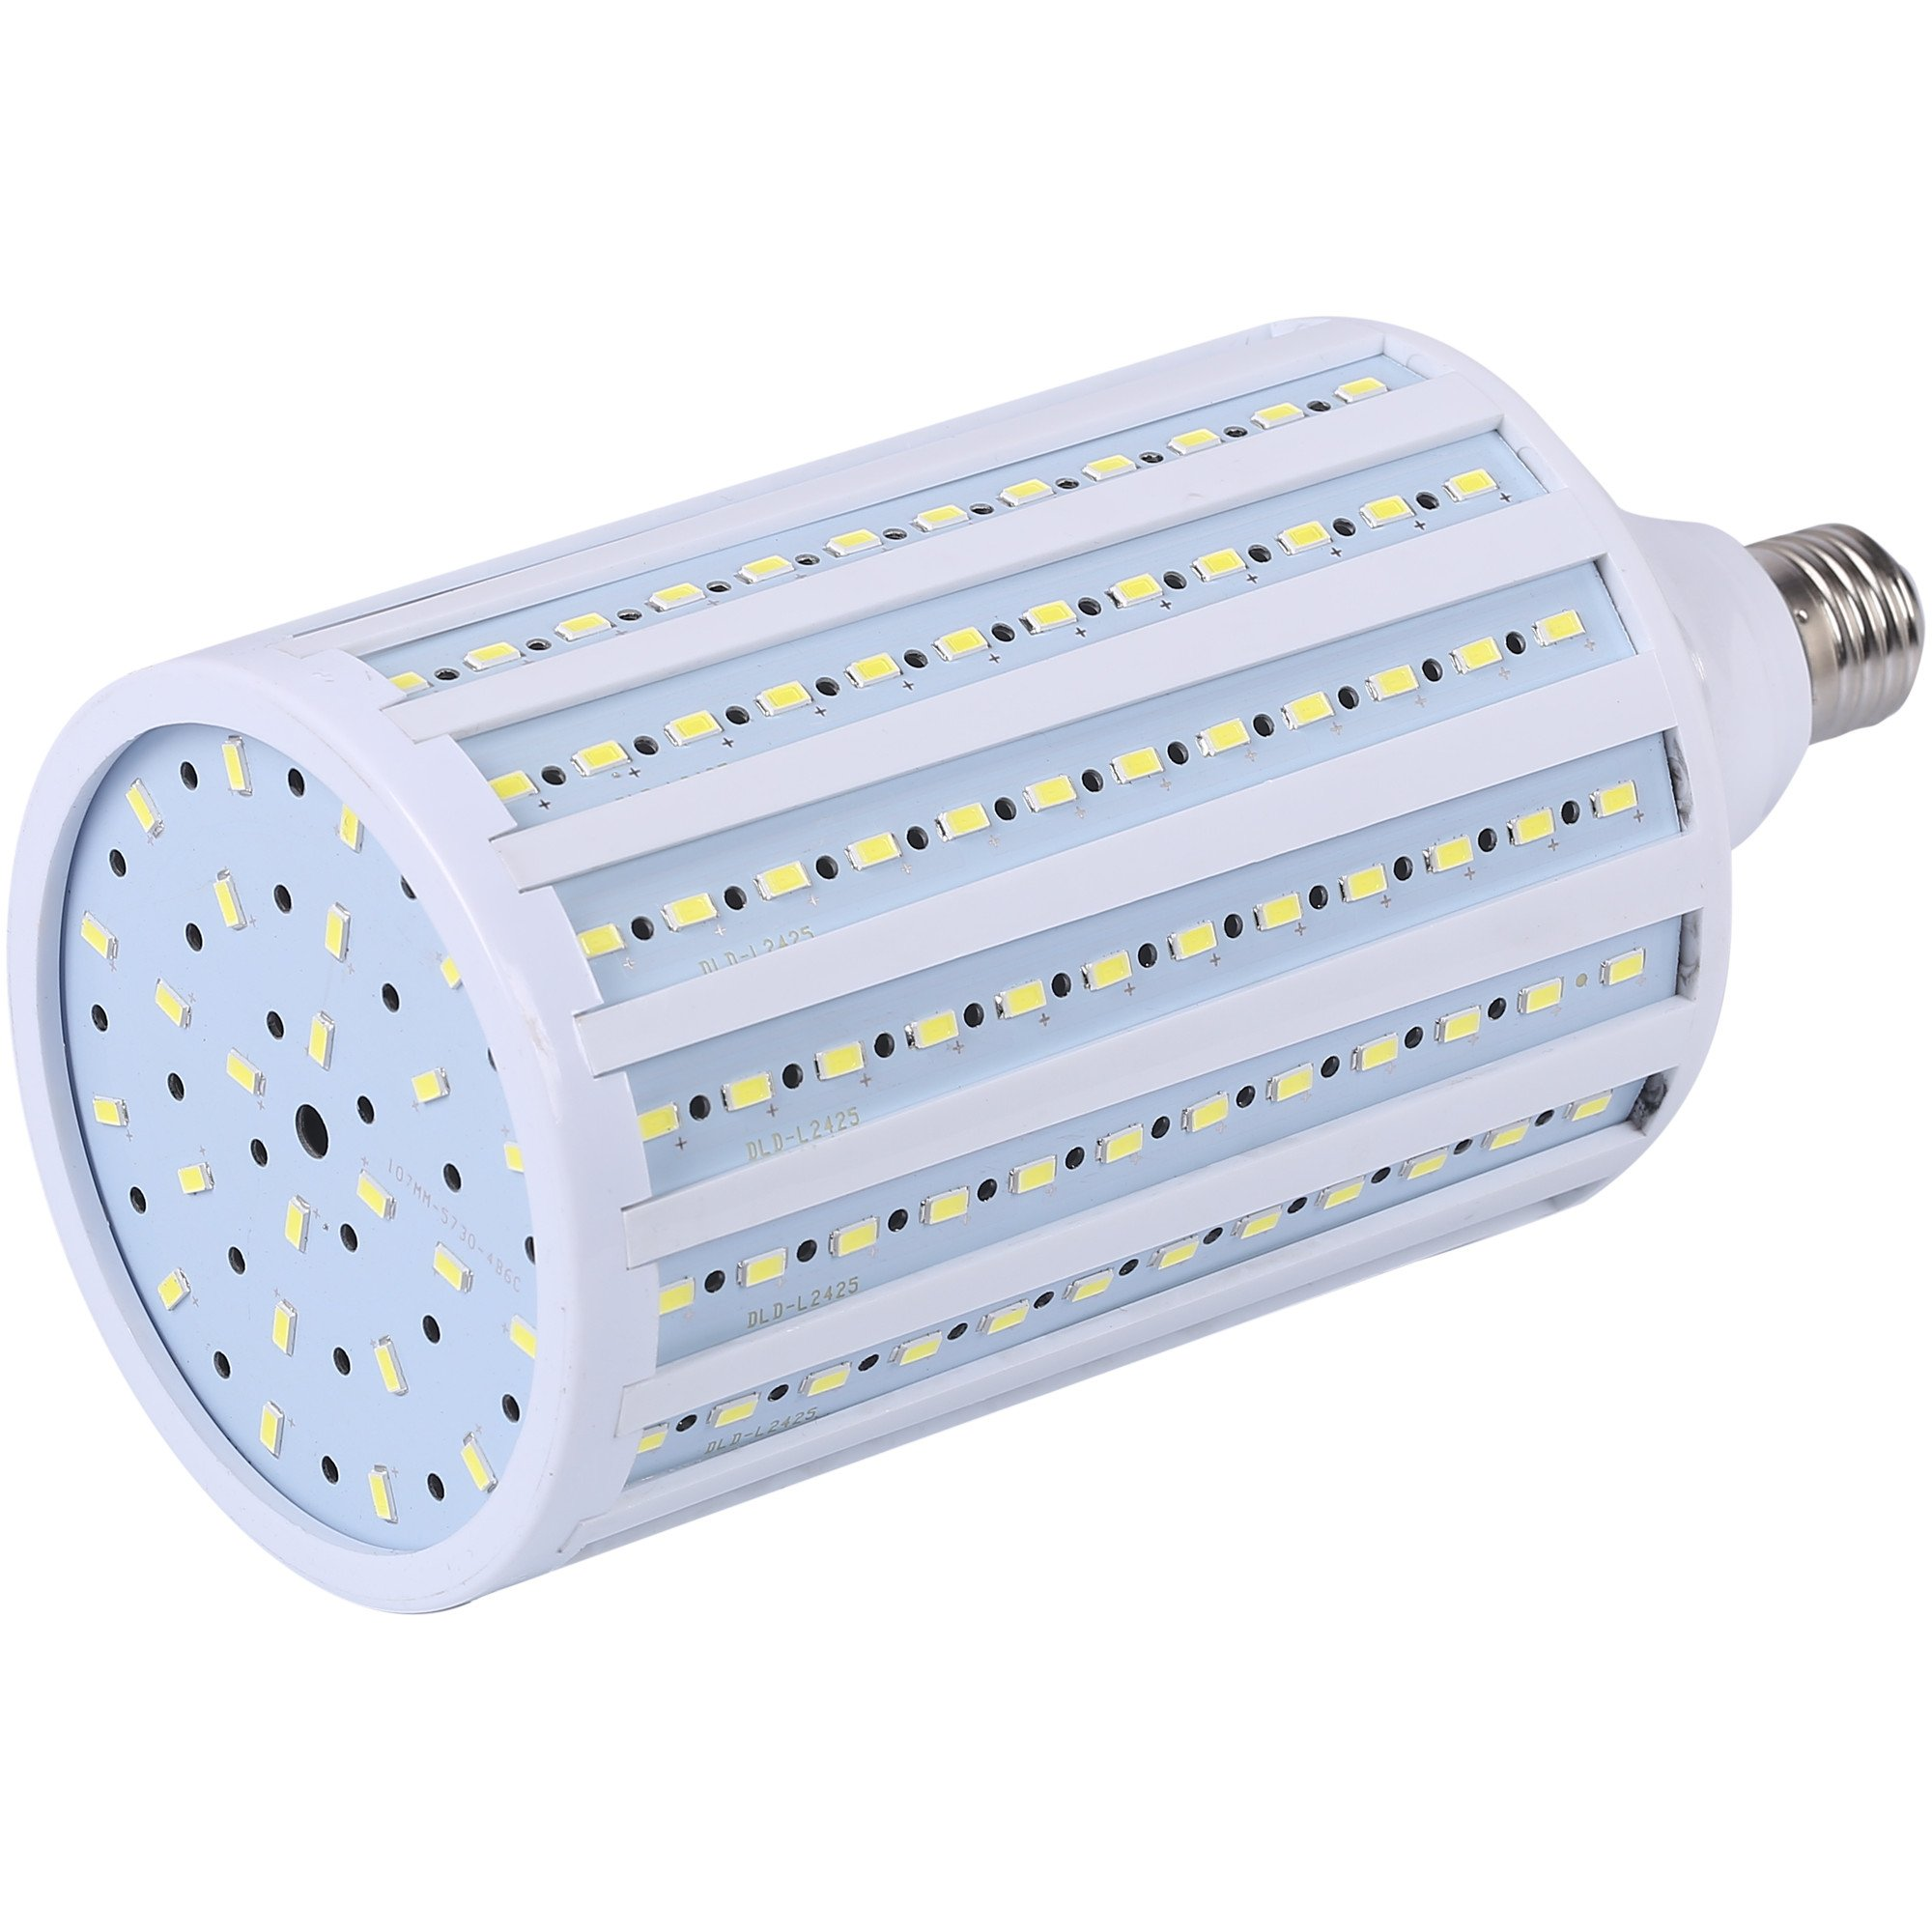 JacobsParts Huge Super Bright LED Corn Light Bulb 50W / 300W Equivalent 5000lm 216-Chip E26 Cool Daylight White 6000K